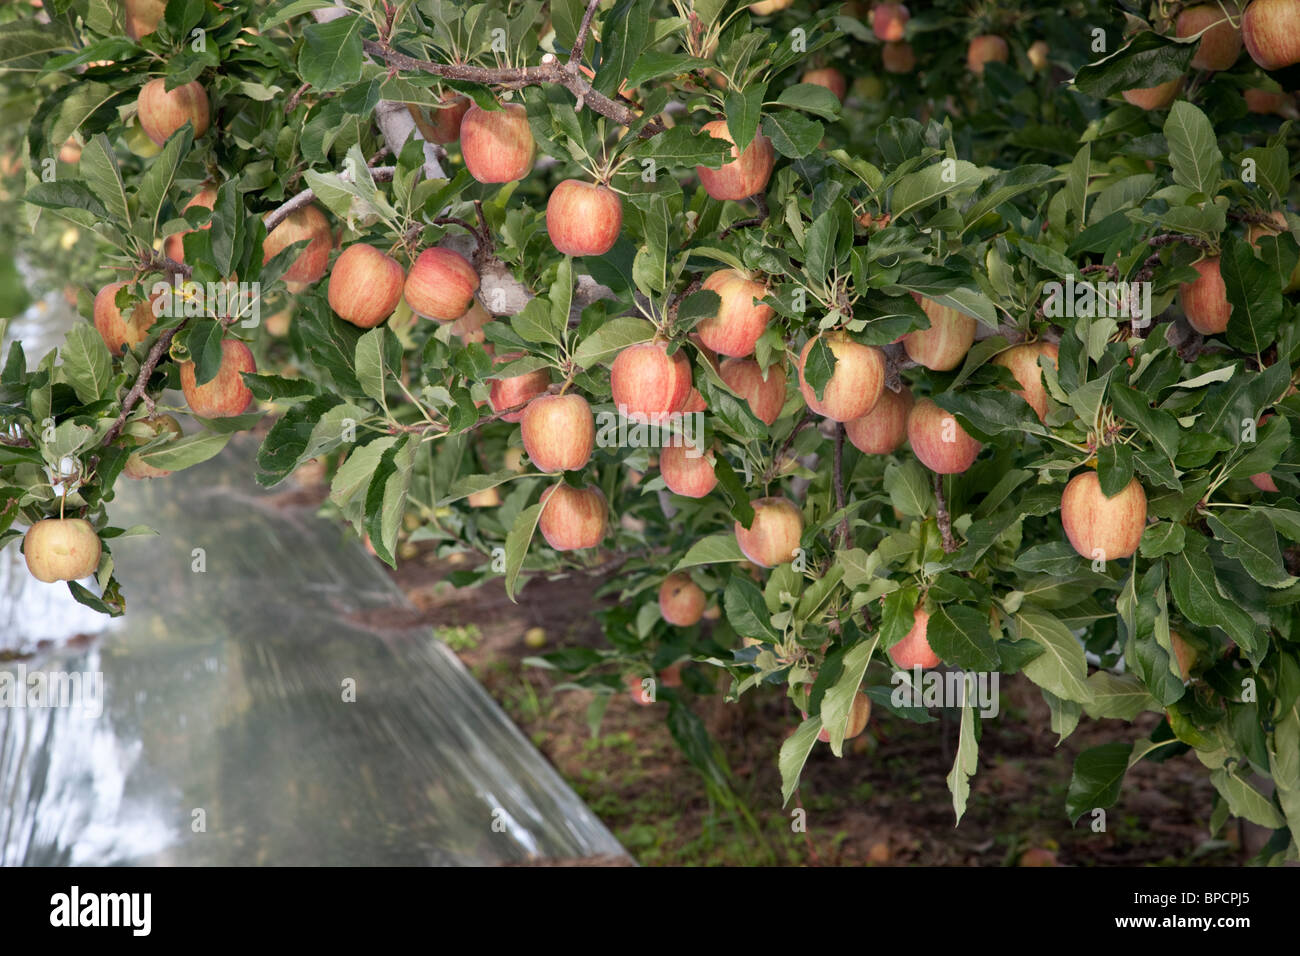 Apples 'Gala' branches. Stock Photo